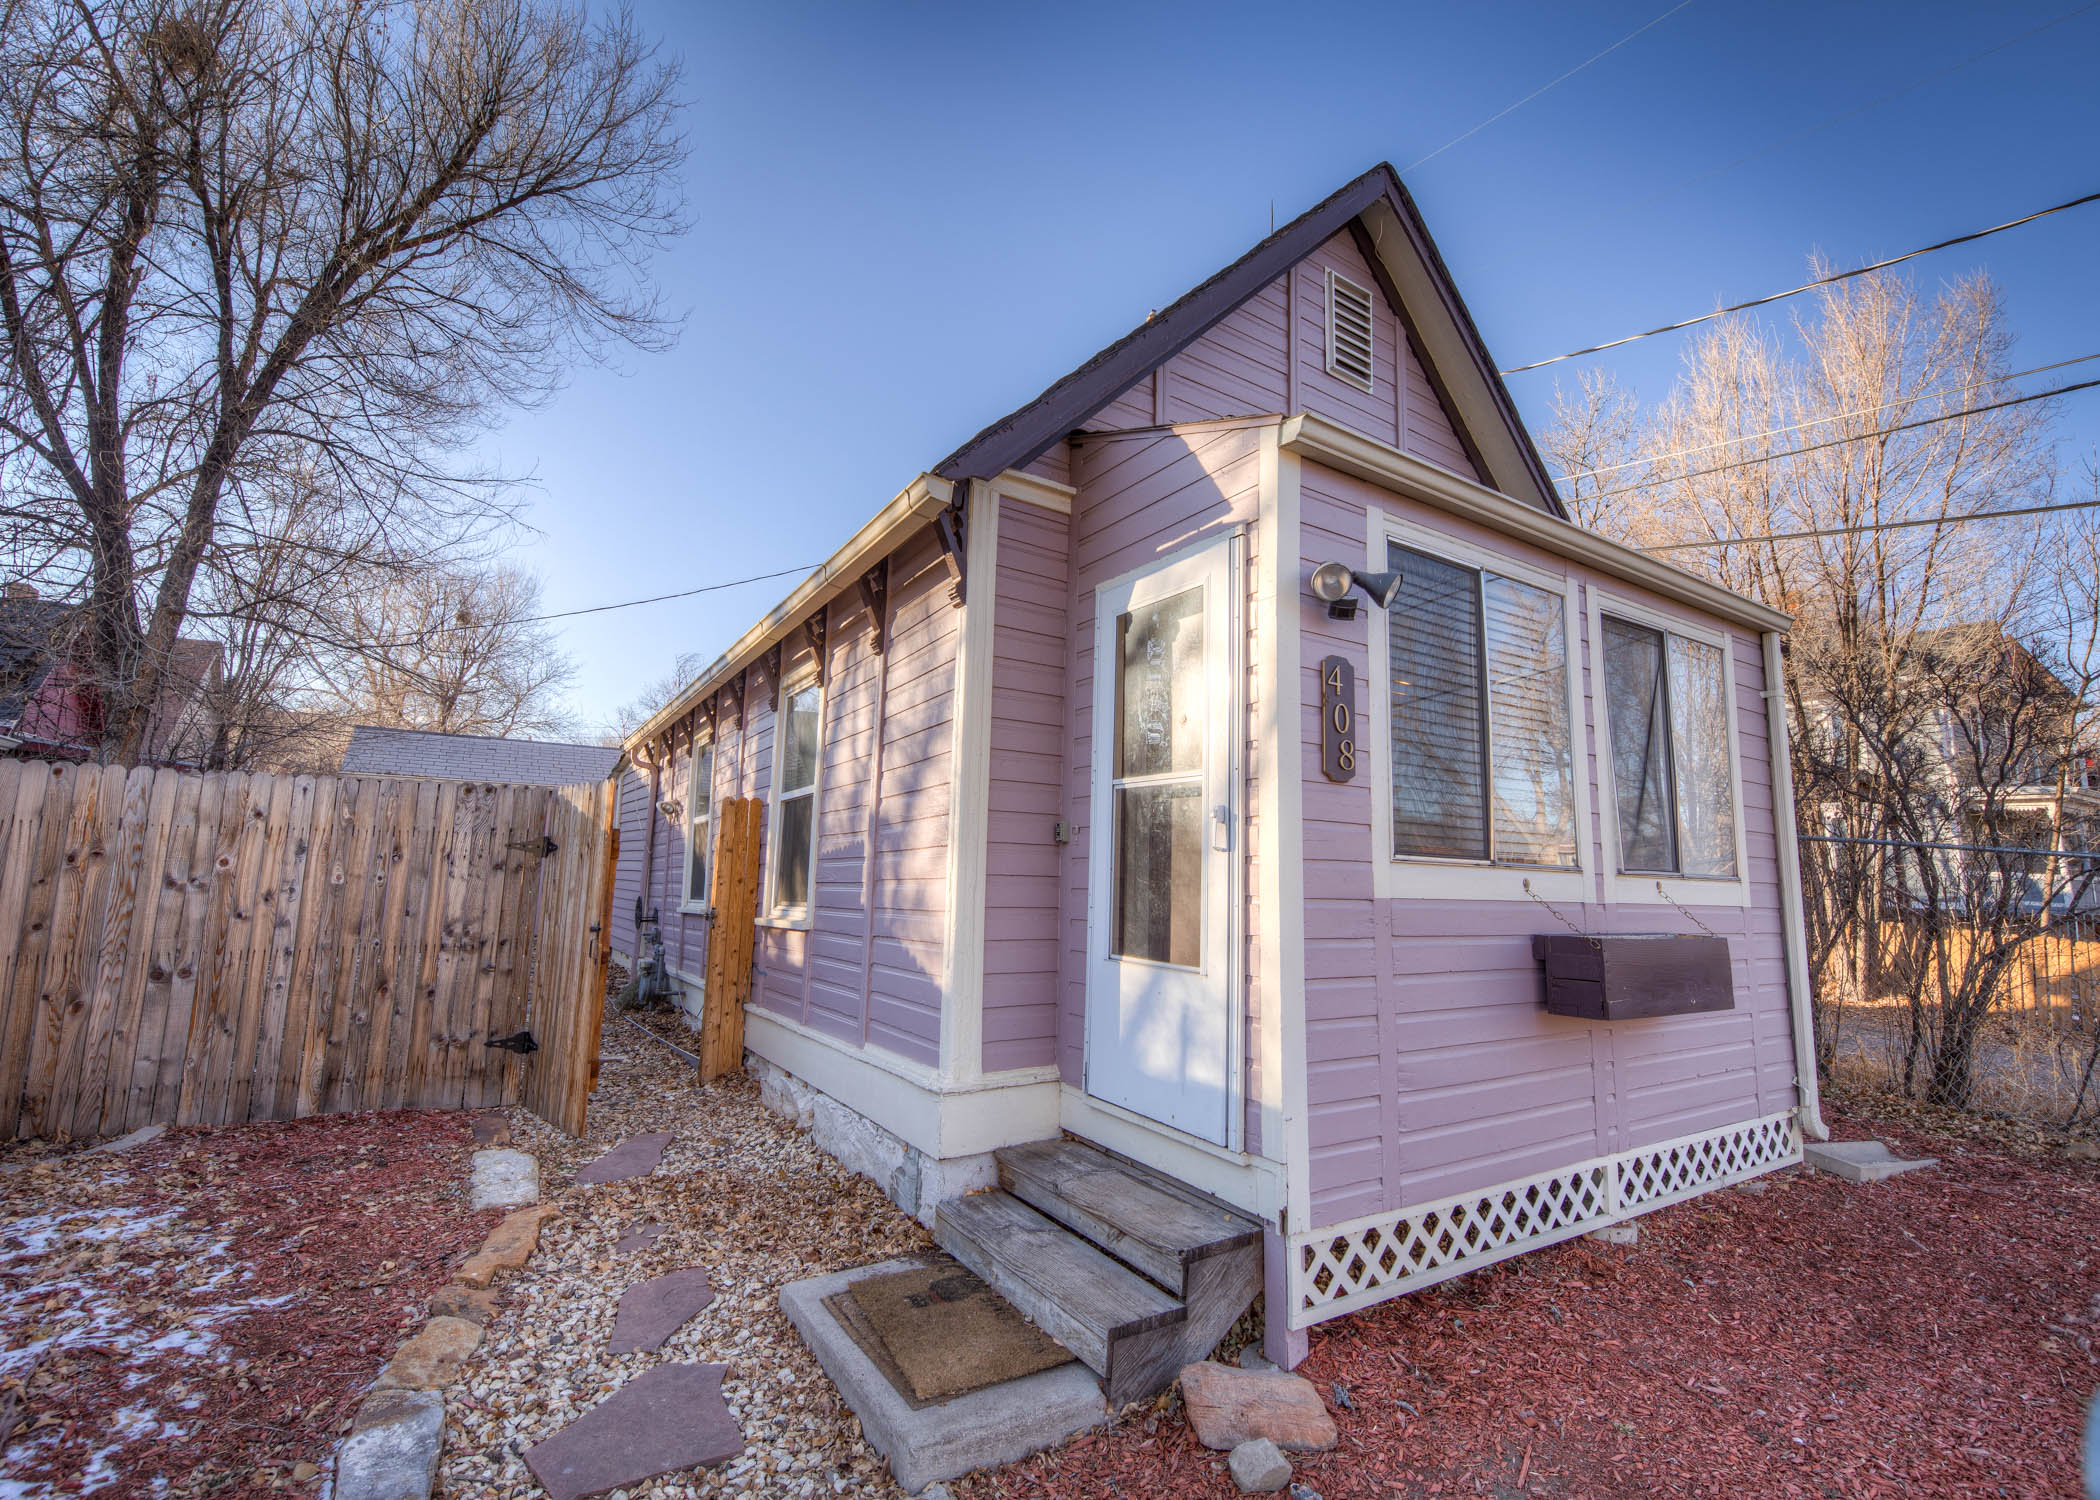 408 N Corona Street Colorado Springs Co 80903 Sold